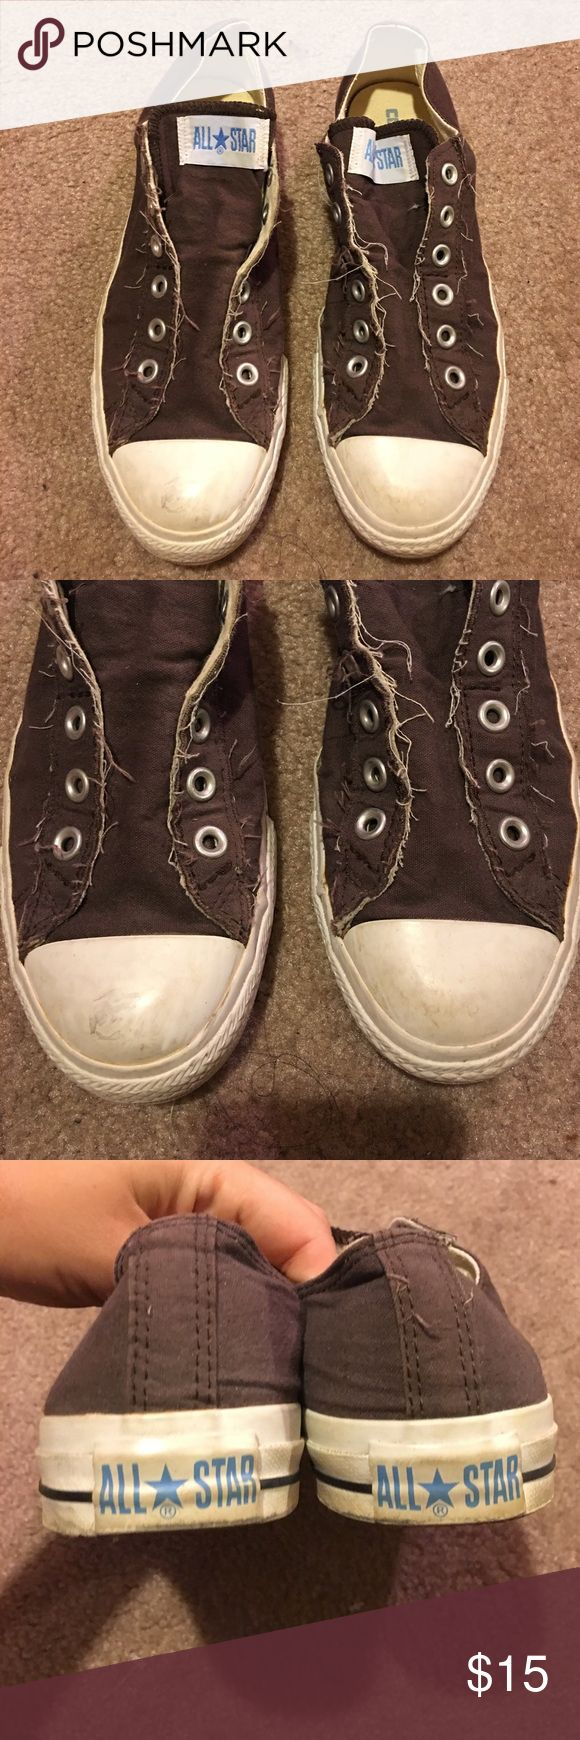 Size 9 pair of brown converse Women's size 9 pair of brown stringless converse. Has a little wear to them as shown but in still good condition! Converse Shoes Sneakers